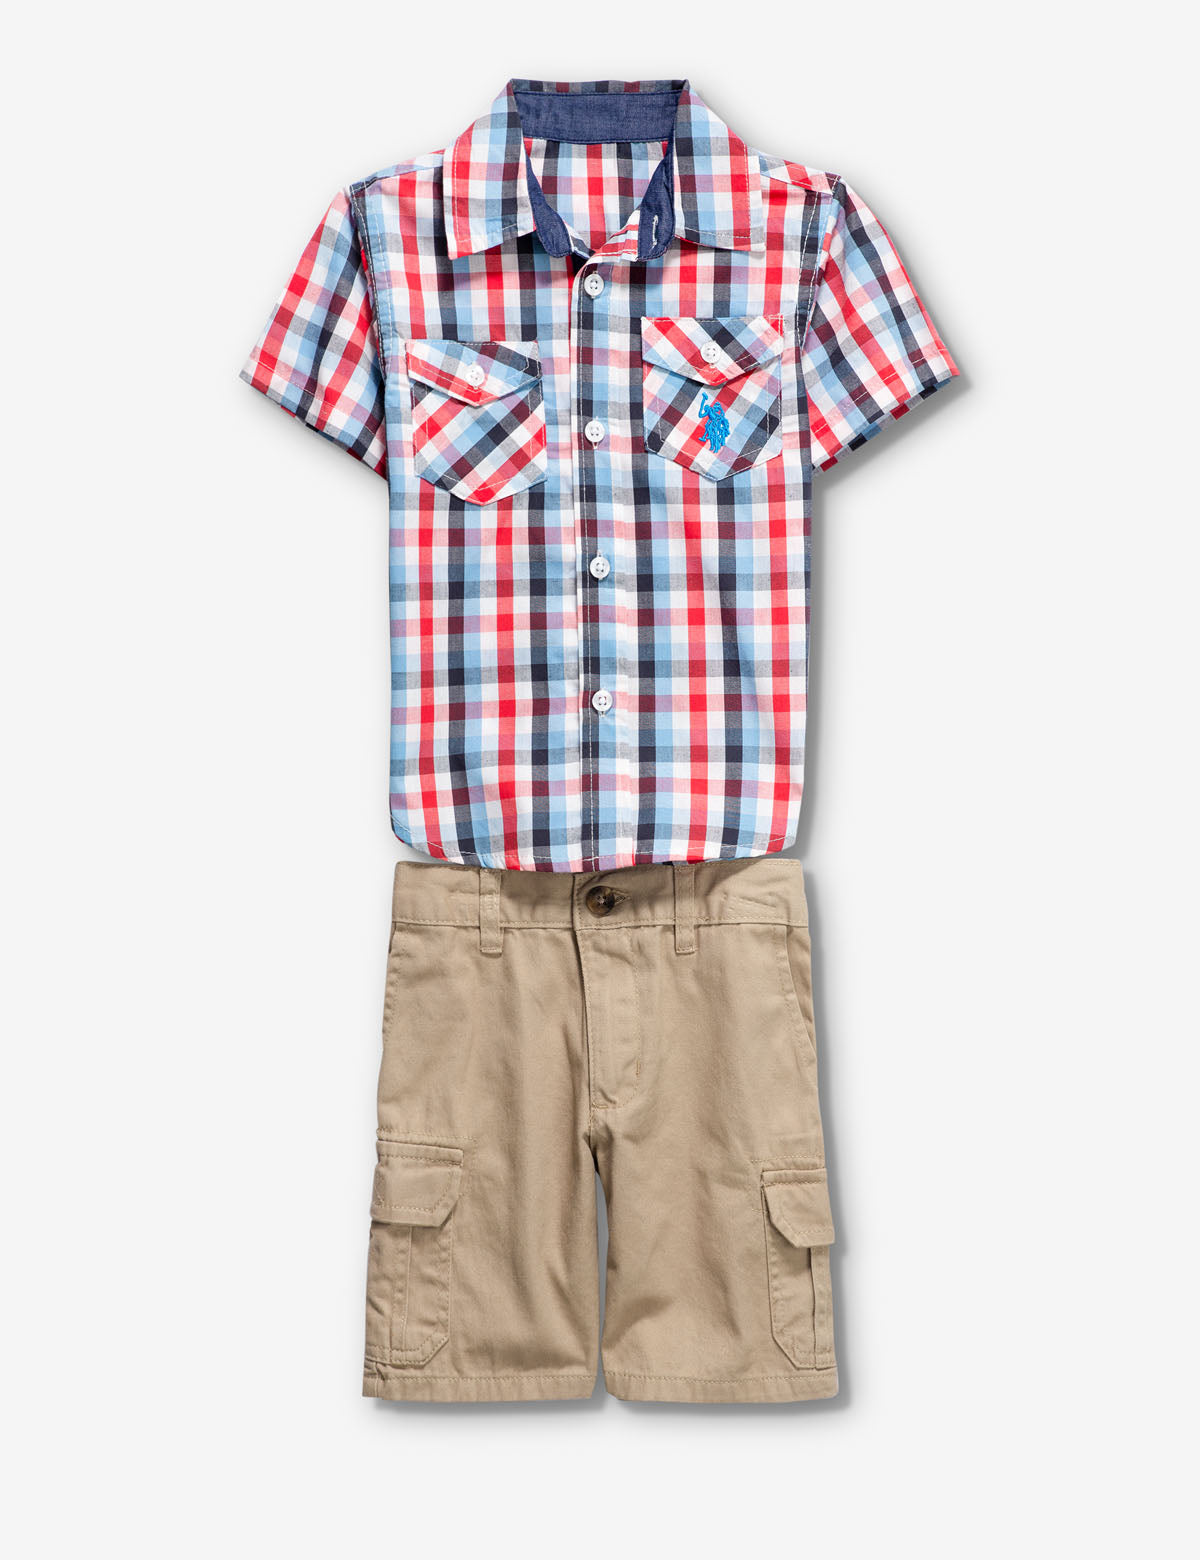 TODDLER BOYS 2 PIECE SET: PLAID SHIRT & SHORTS